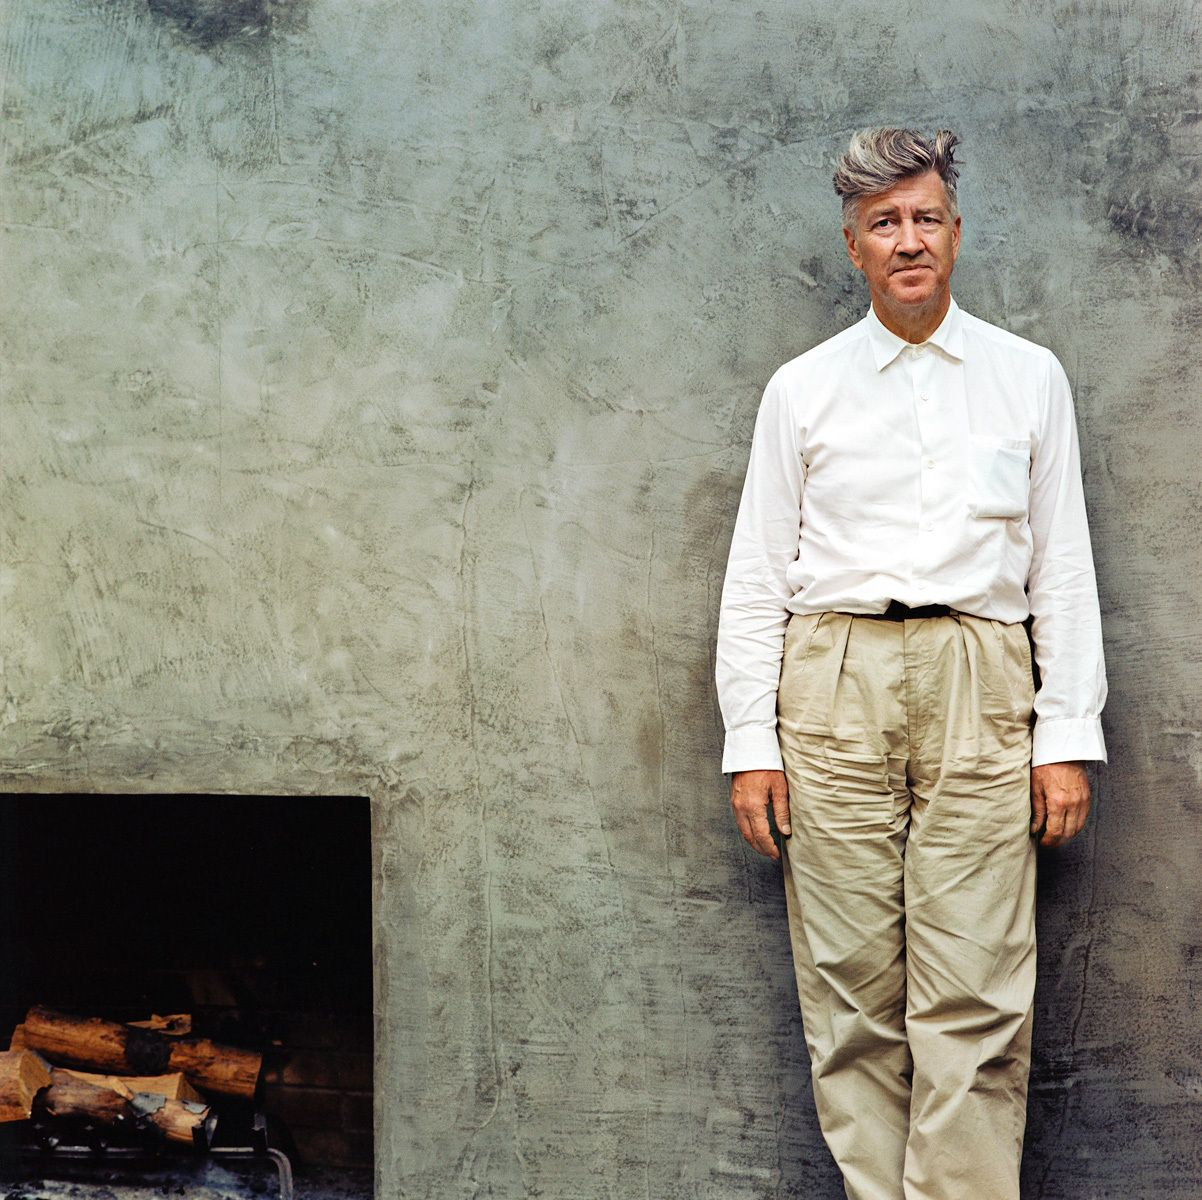 David Lynch, Filmmaker